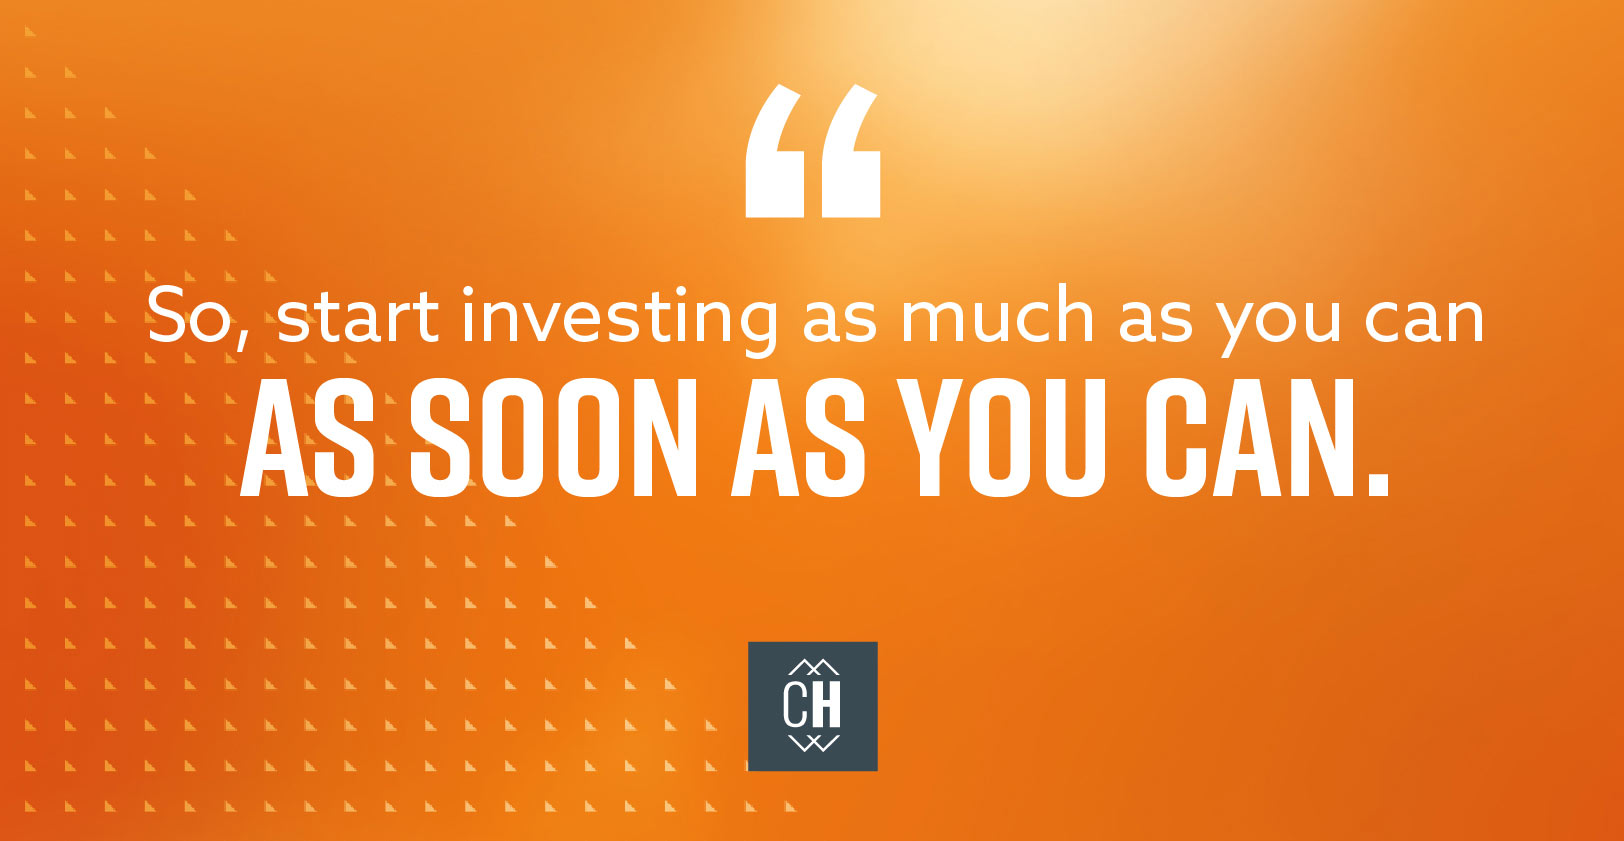 So start investing as much as you can as soon as you can